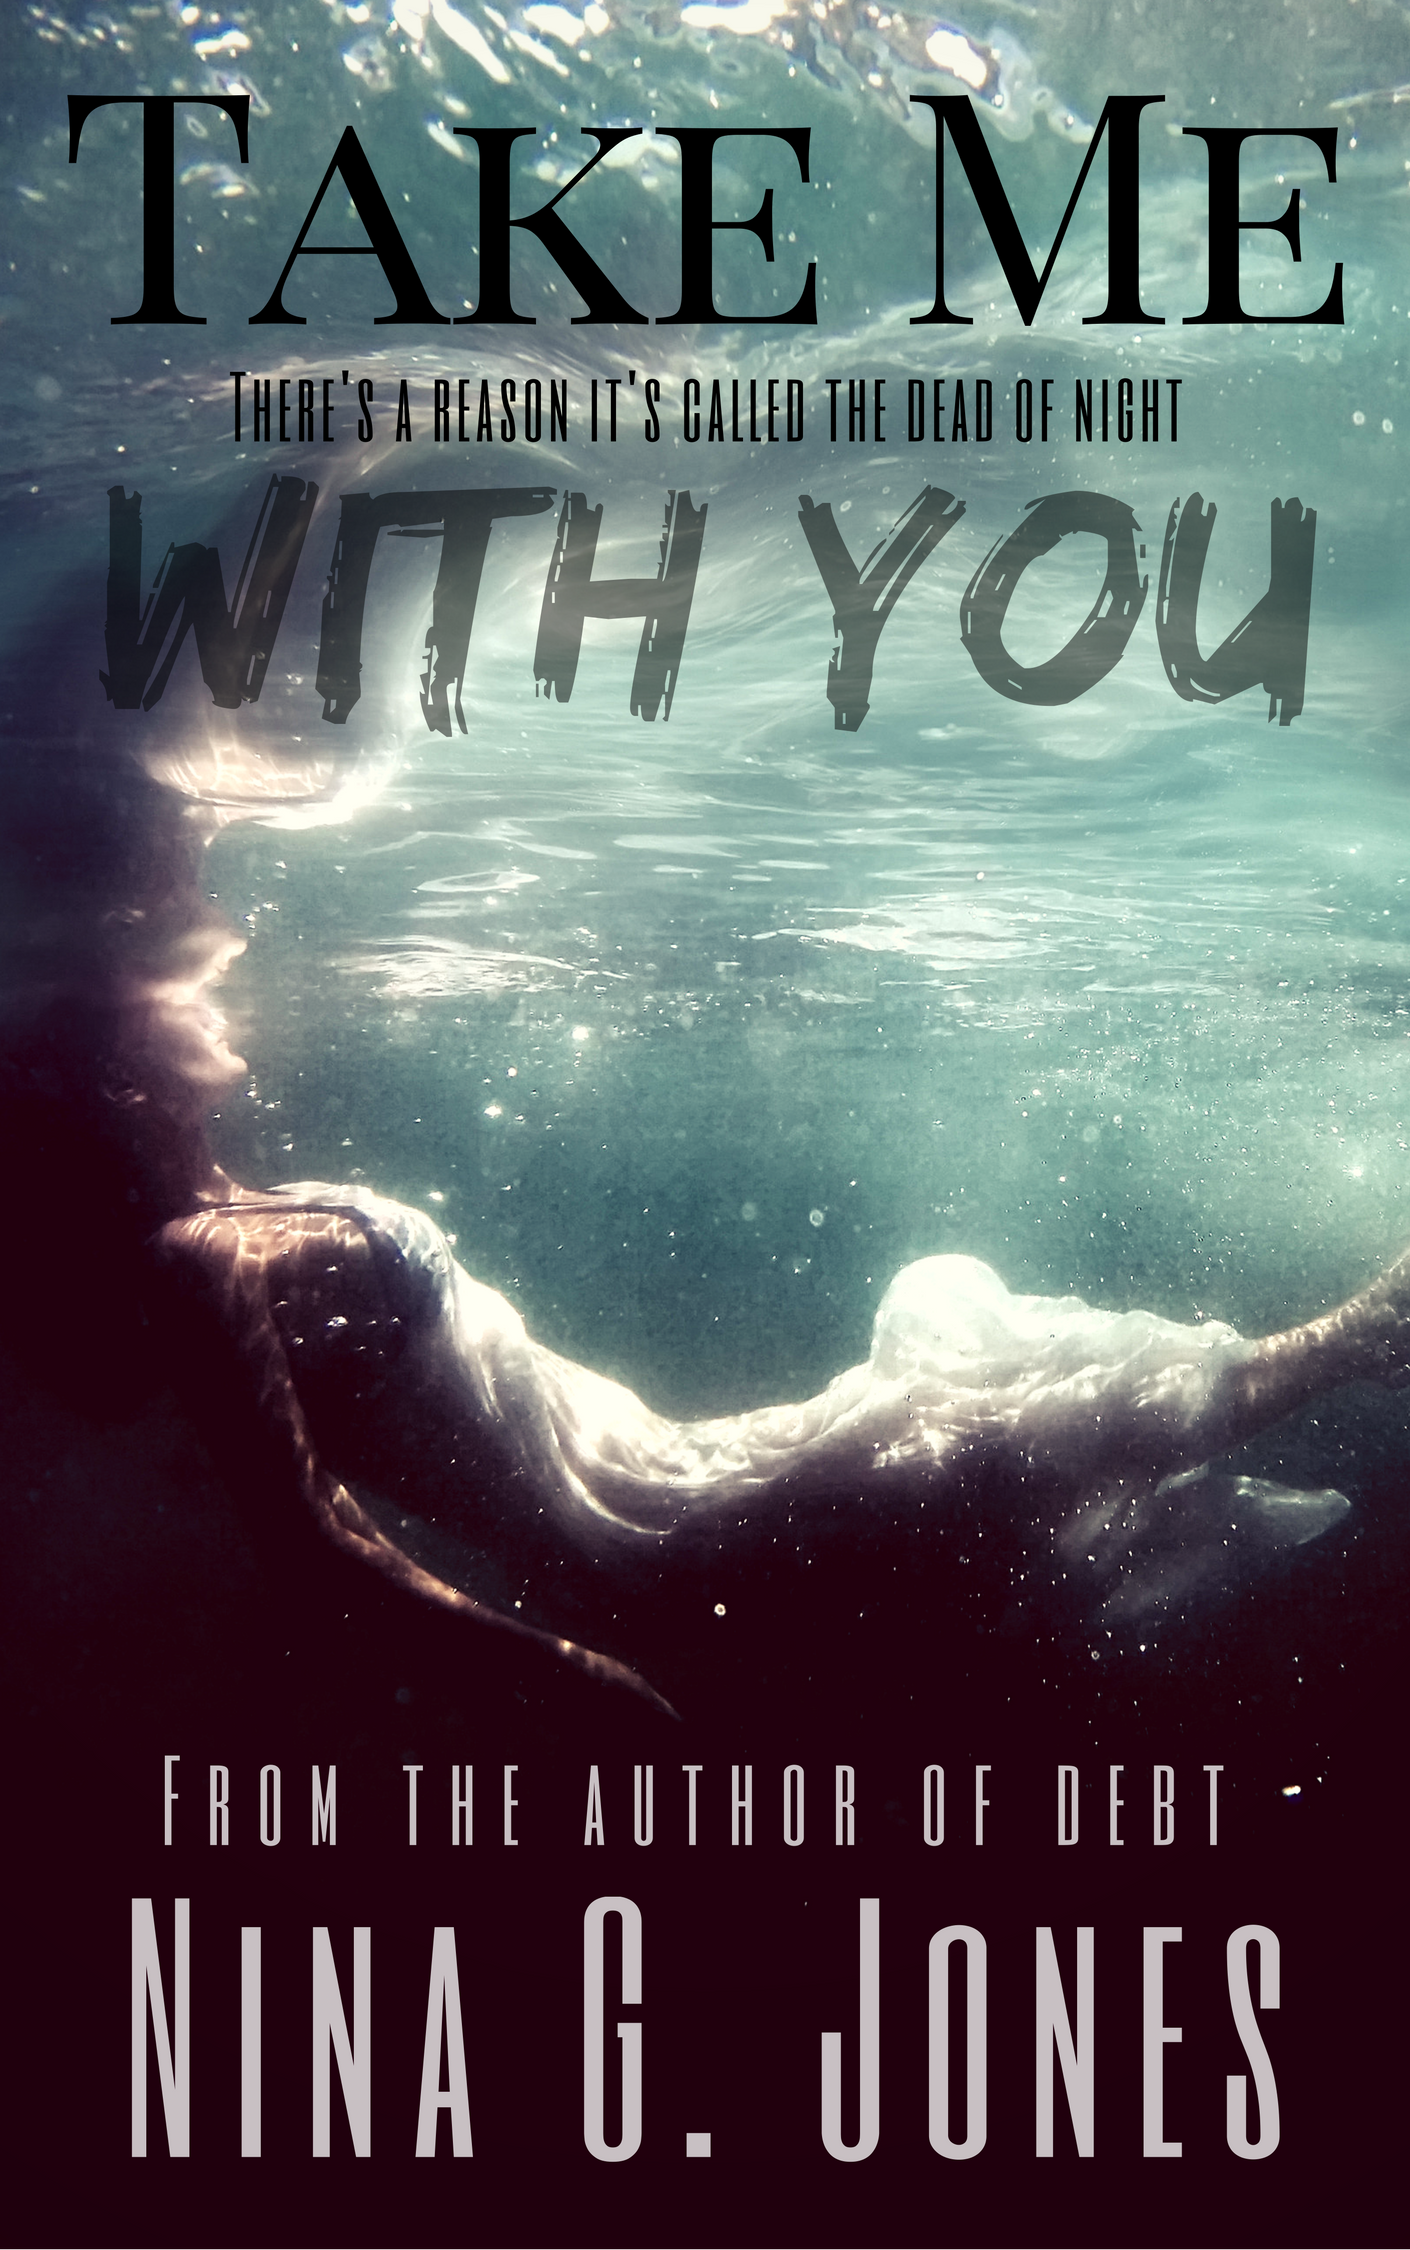 REVIEW: Take Me With You by Nina G. Jones